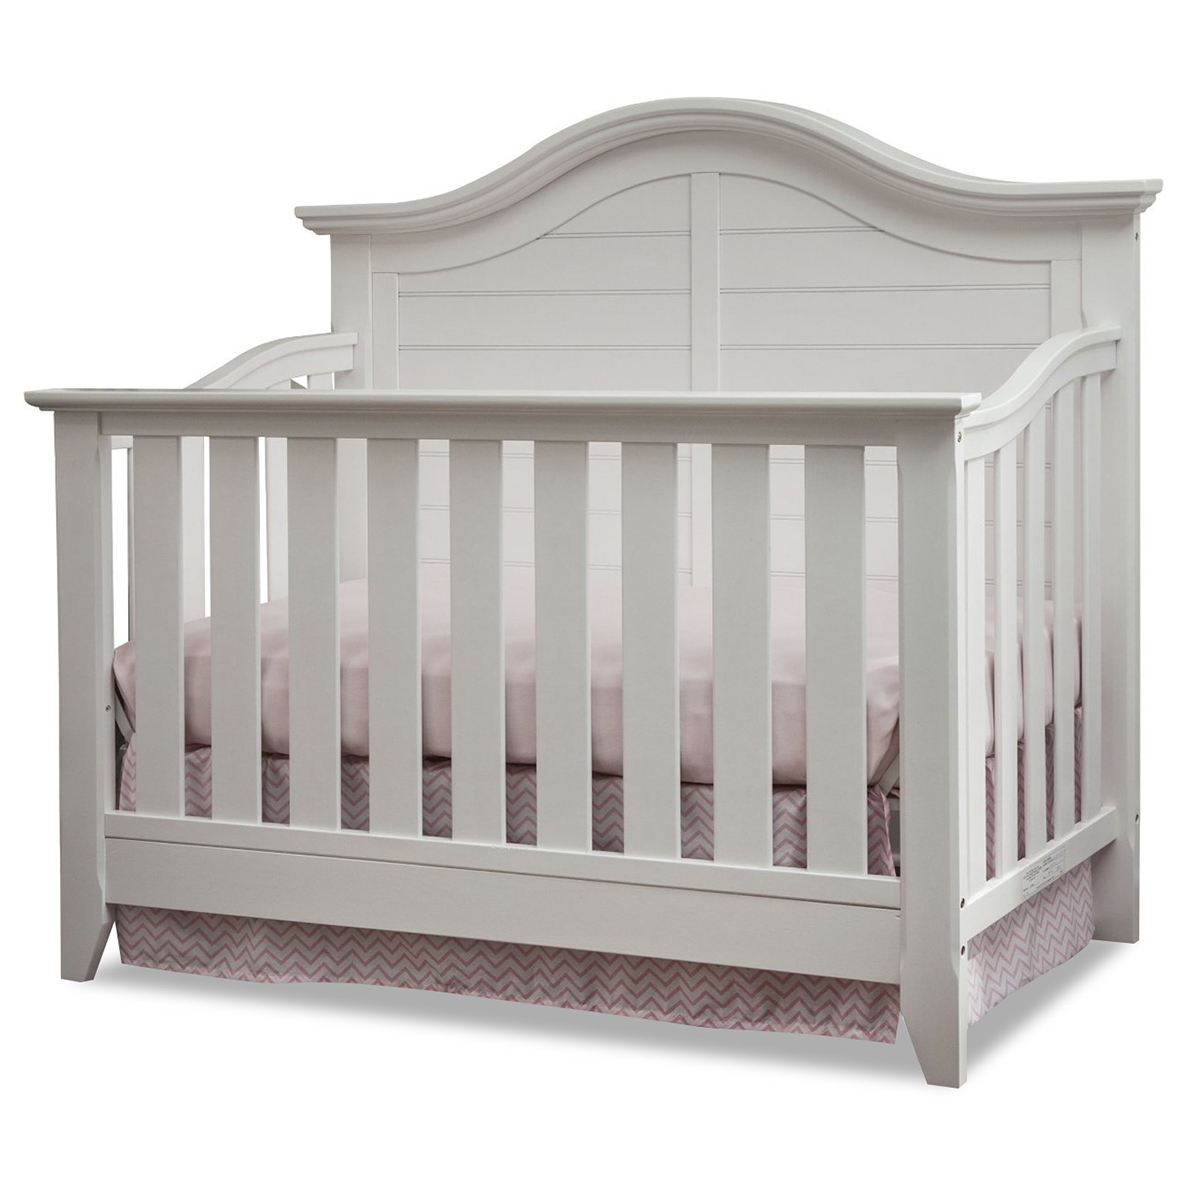 Crib for babies philippines - Thomasville Southern Dunes Lifestyle Crib In White